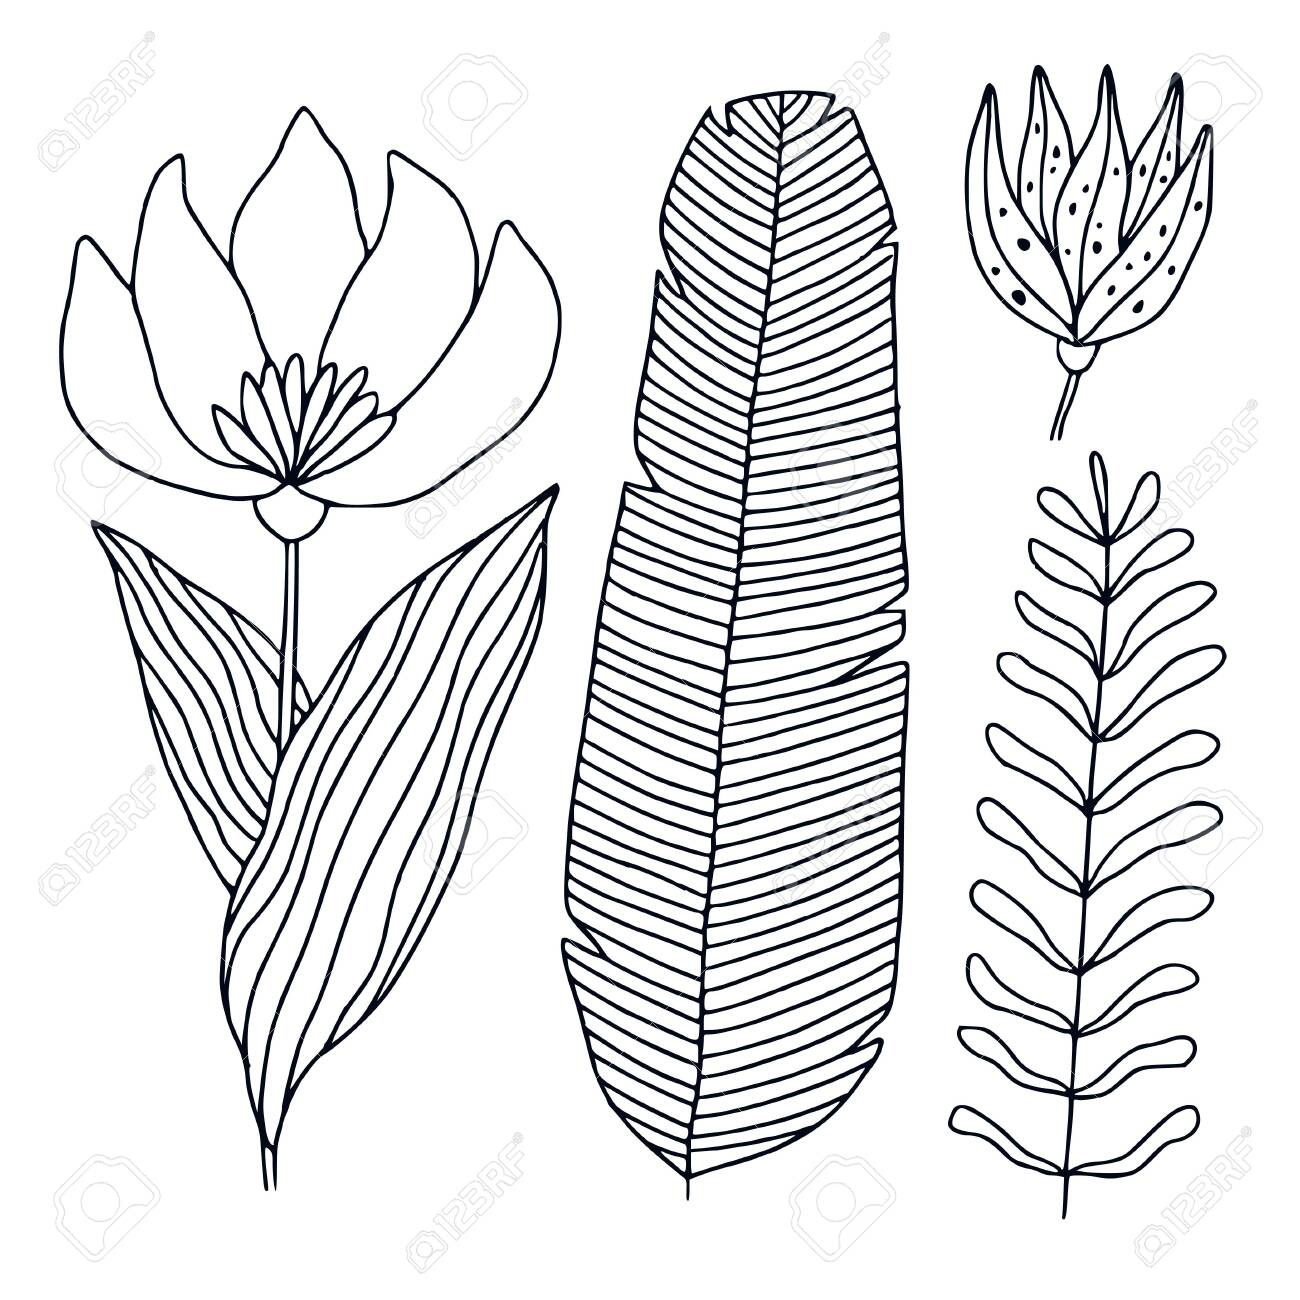 - Tropical Flora Illustration. Printable Line Art. Tropic Leaves And